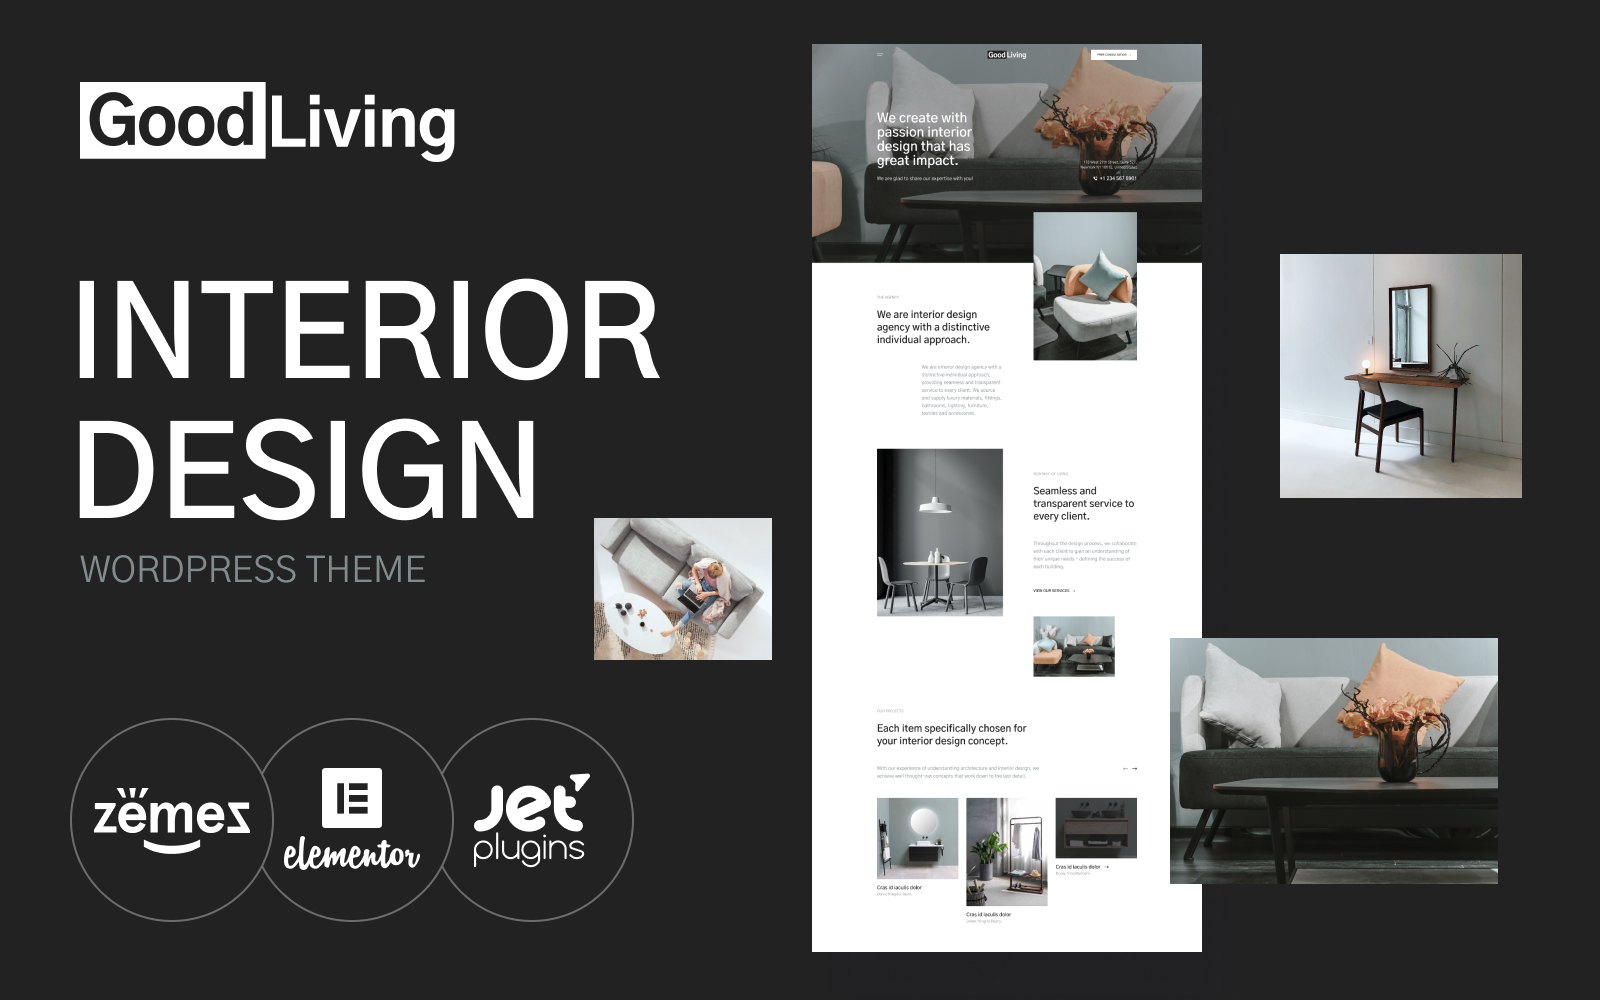 Reszponzív GoodLiving - Interior Design WordPress sablon 118998